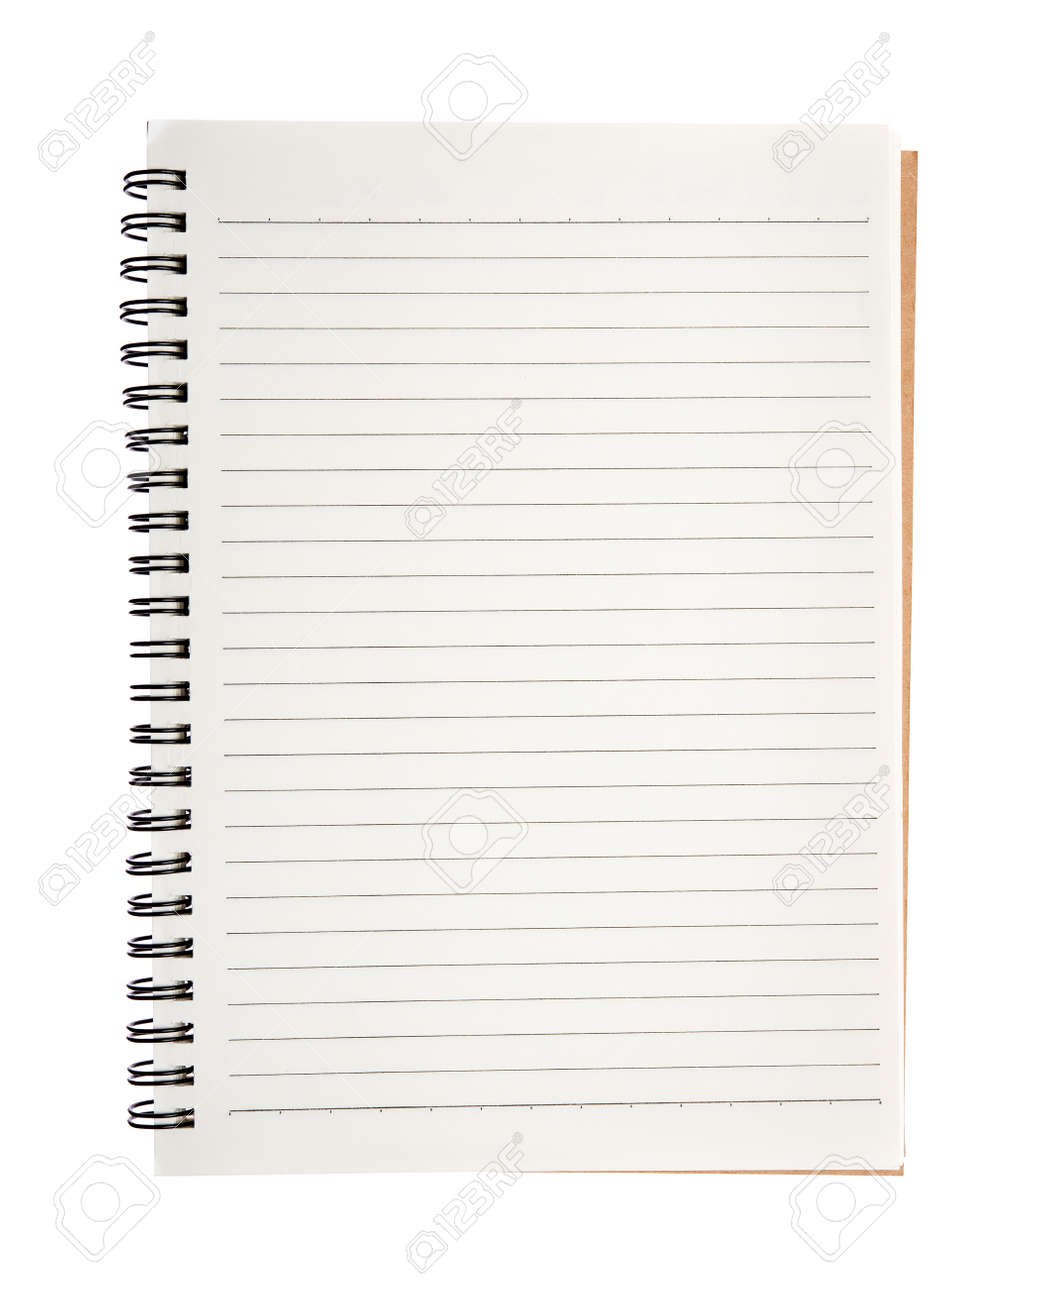 Open blank notebook isolated on white background. - 129316464